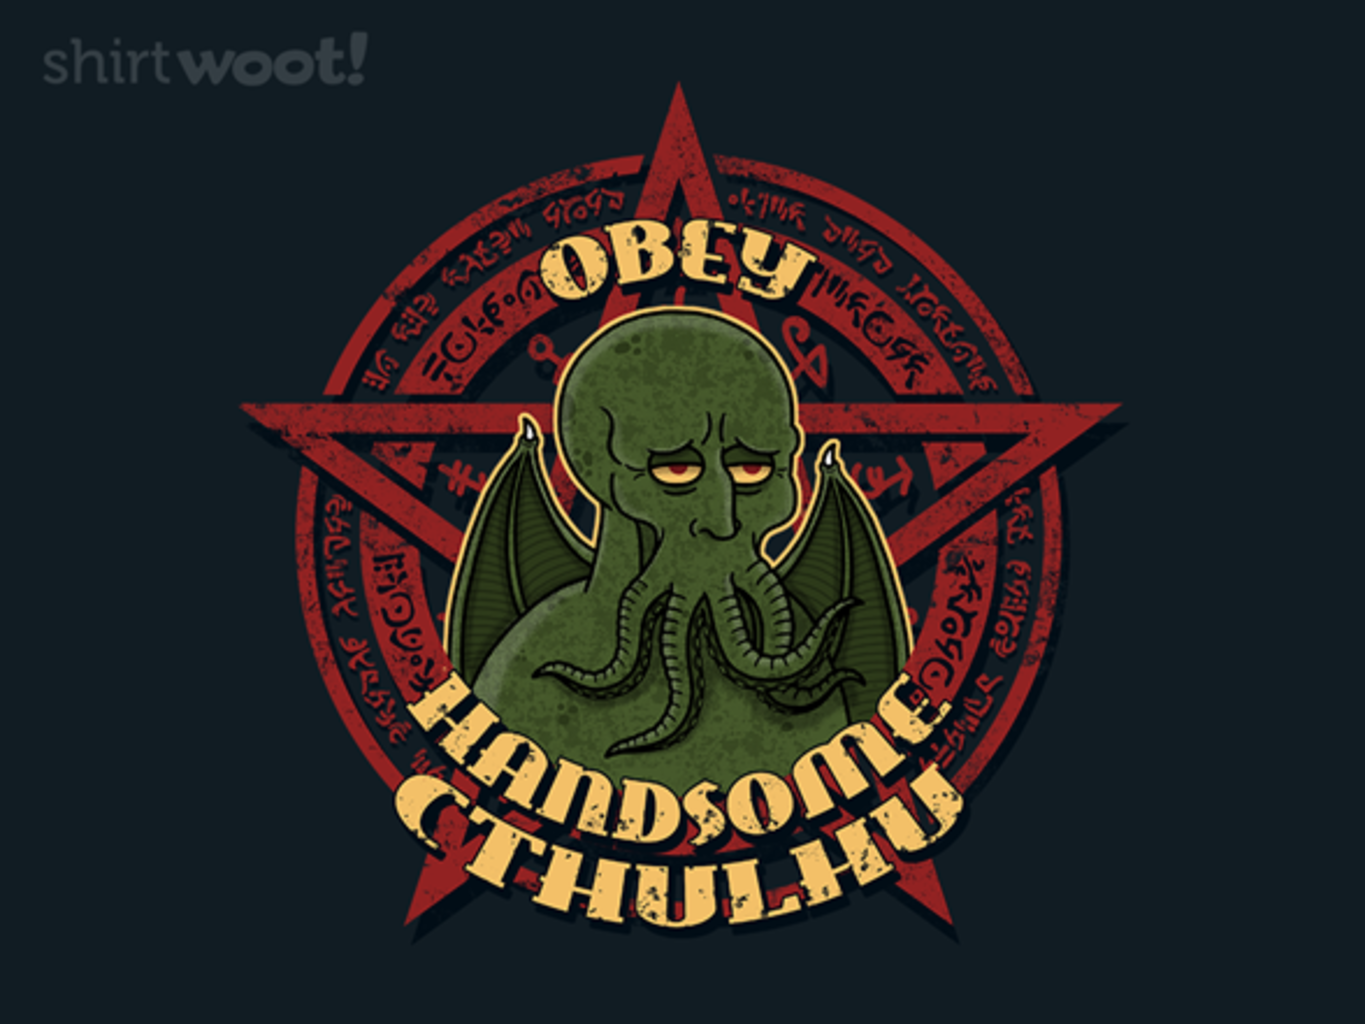 Woot!: Handsome Cthulhu